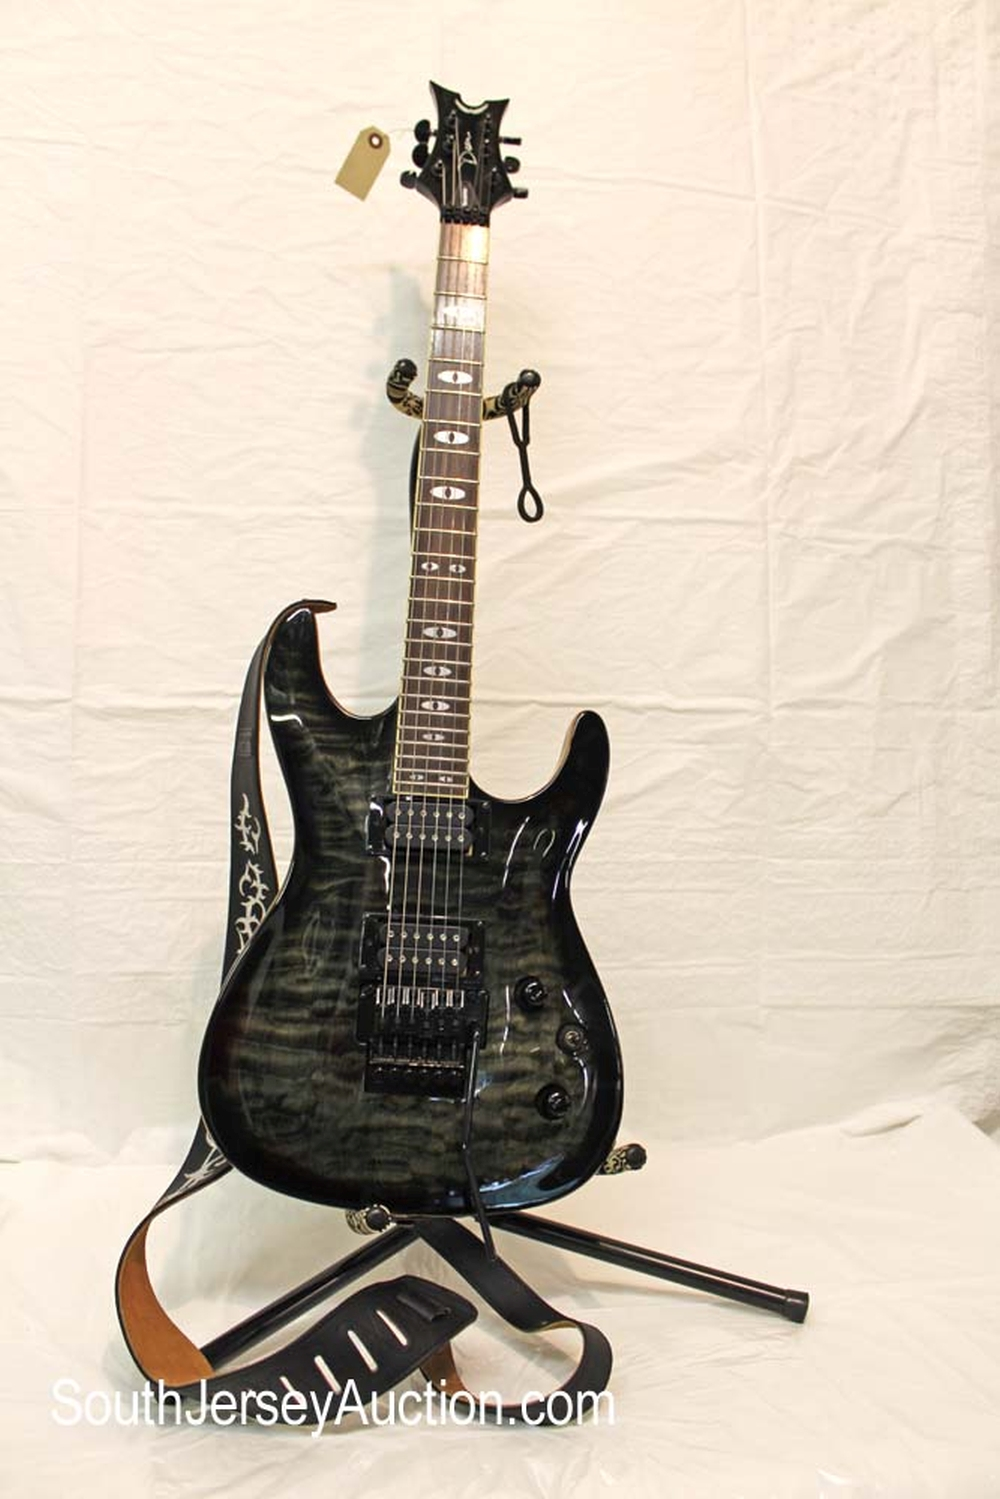 Dean Vendetta spalted finish guitar in the (greens/black), grover tuners, with strap, year unknown , s/n US07061697 in very good condition